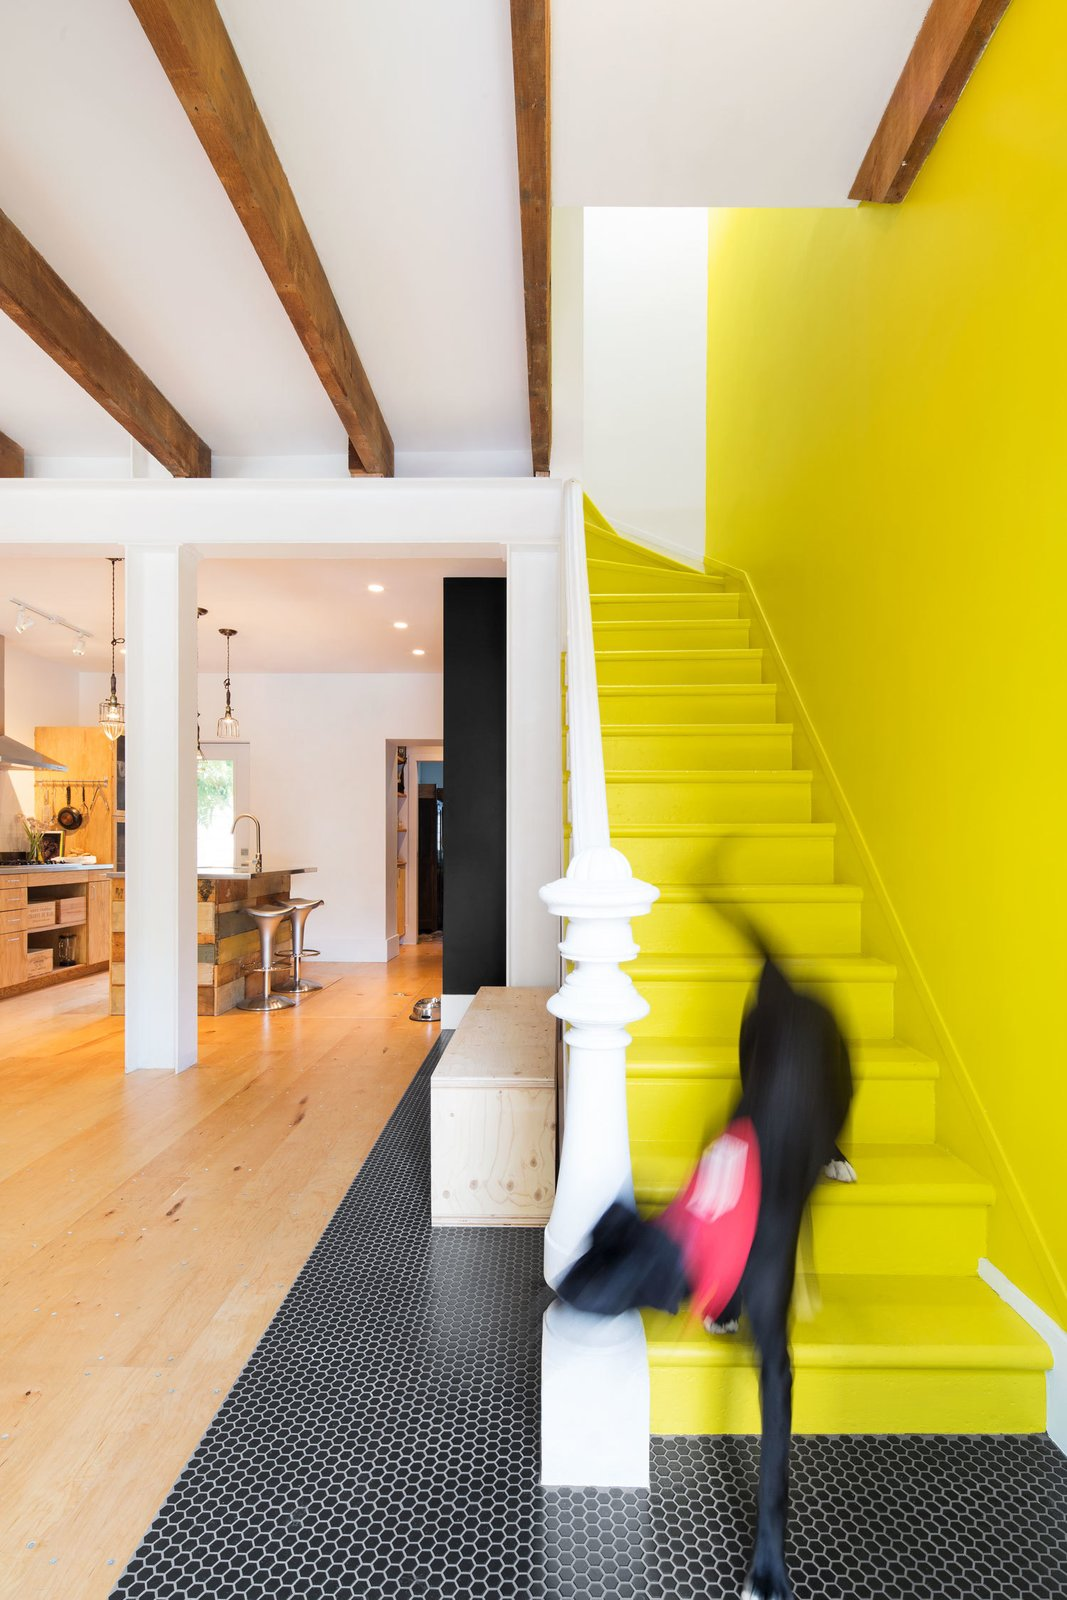 "Staircase, Wood Tread, and Wood Railing ""I always wanted to have my very own yellow brick road,"" says Viviana de Loera, whose favorite part of the home is the playful staircase. The original stairs and handrail were preserved in the renovation.  Photo 9 of 25 in 25 Bold Ways to Decorate with Yellow from How to Decorate With Yellow (Without the Smiley-Face Connotations)"